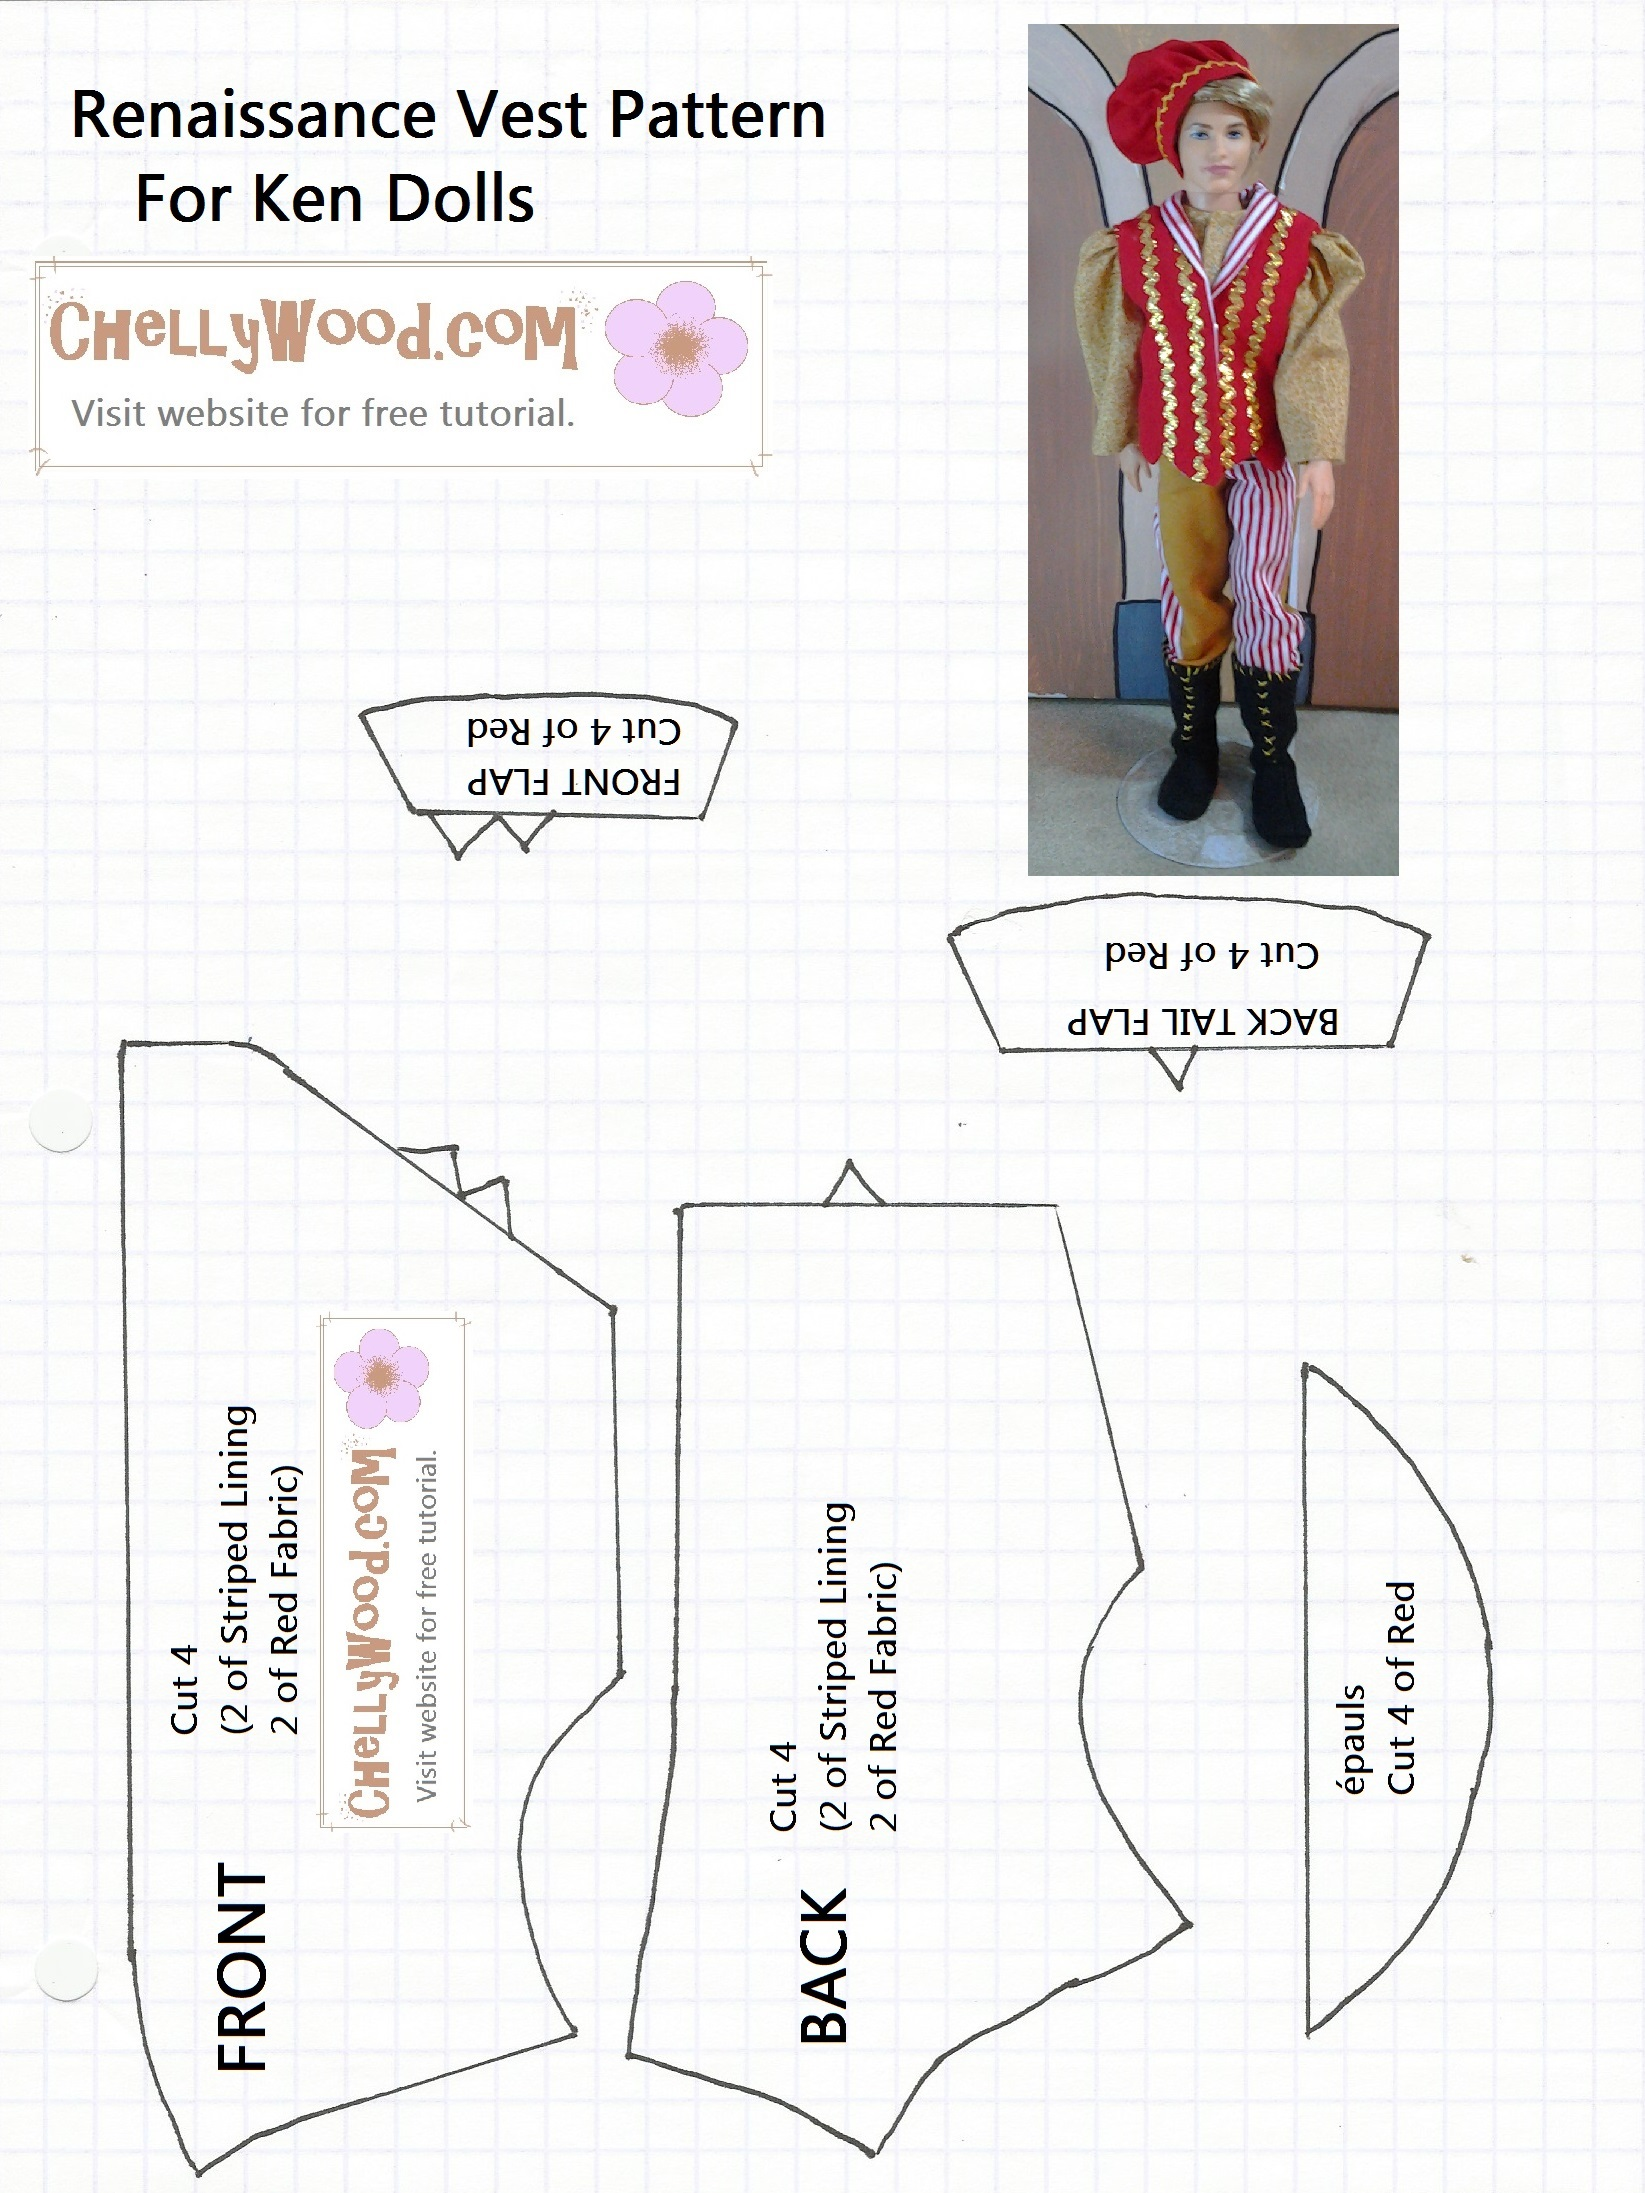 sewing ken pants image of image of vest for ken dolls